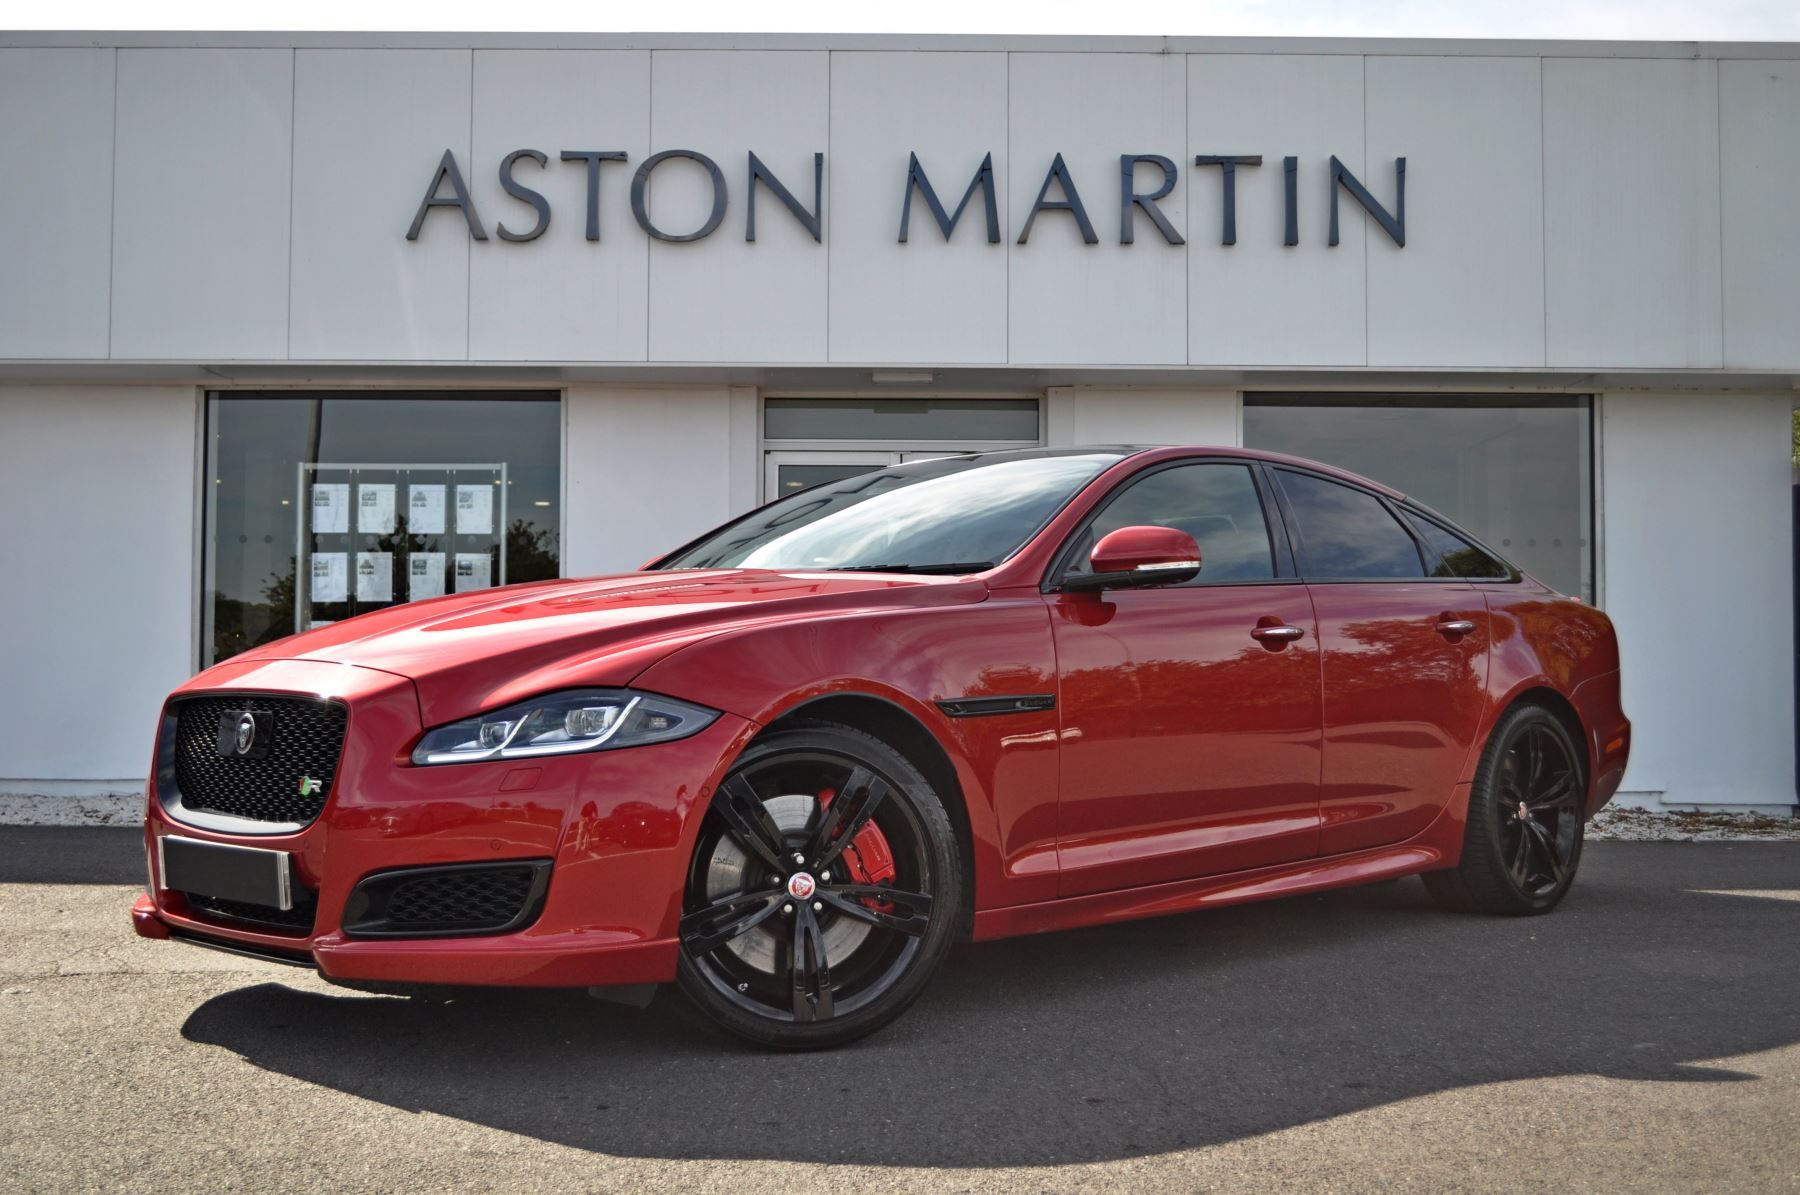 Jaguar XJ 5.0 V8 Supercharged XJR Automatic 4 door Saloon (2016) image